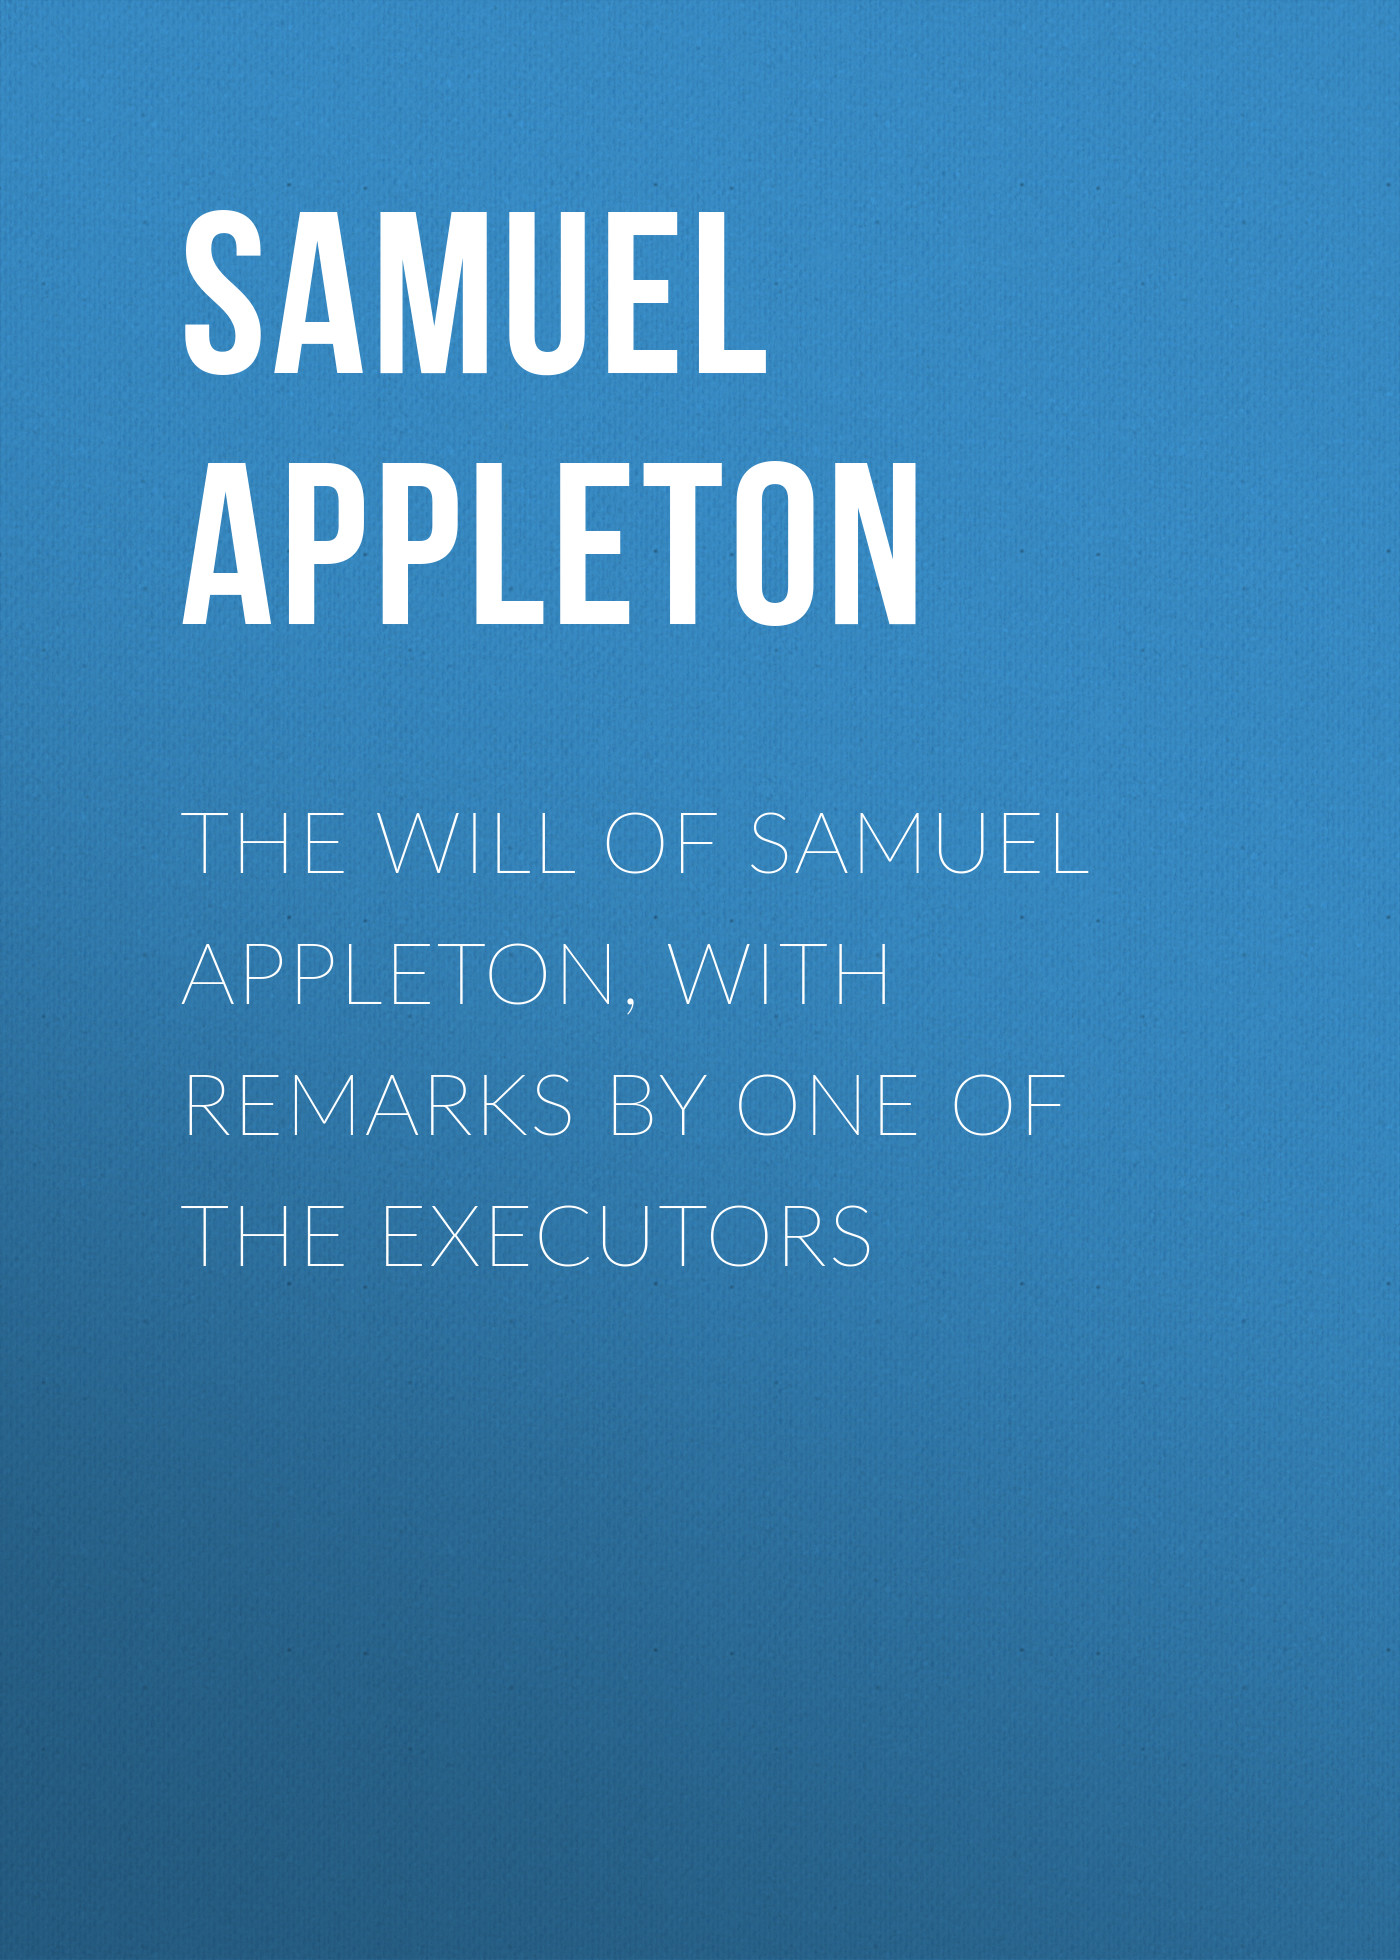 Appleton Samuel The Will of Samuel Appleton, with Remarks by One of the Executors коляска rudis solo 2 в 1 графит красный принт gl000401681 492579